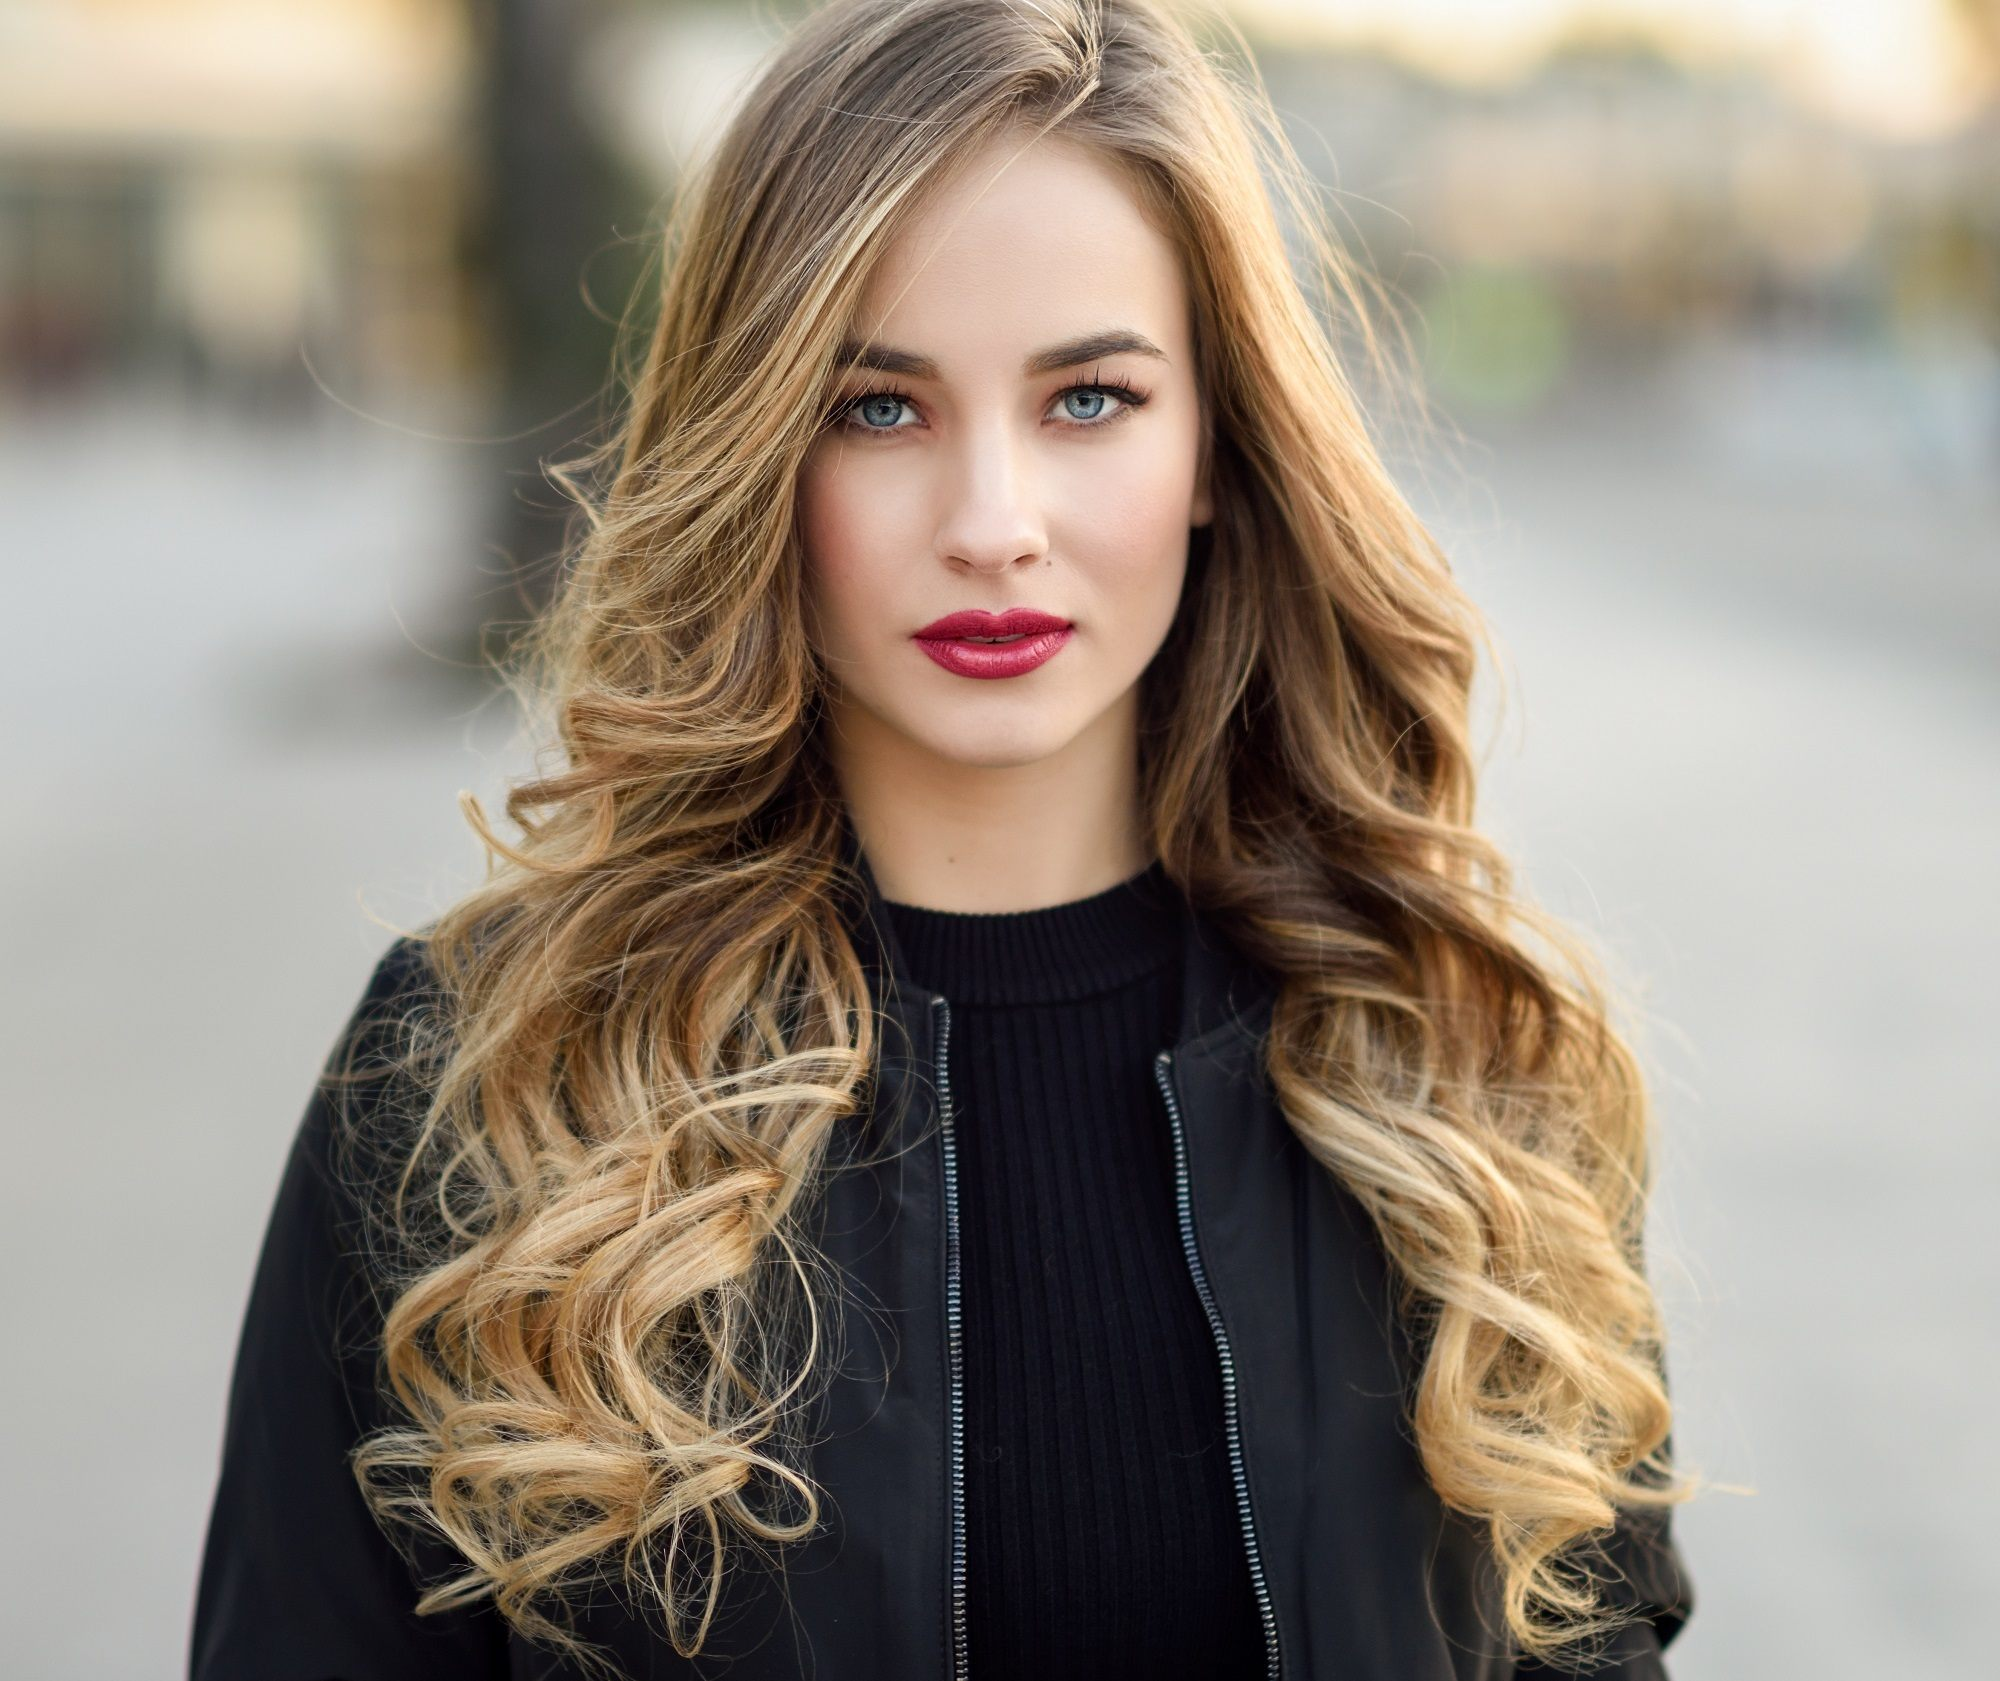 Curly blonde hair: Closeup shot of a woman with long bronde curly hair wearing black long sleeved-top outdoors